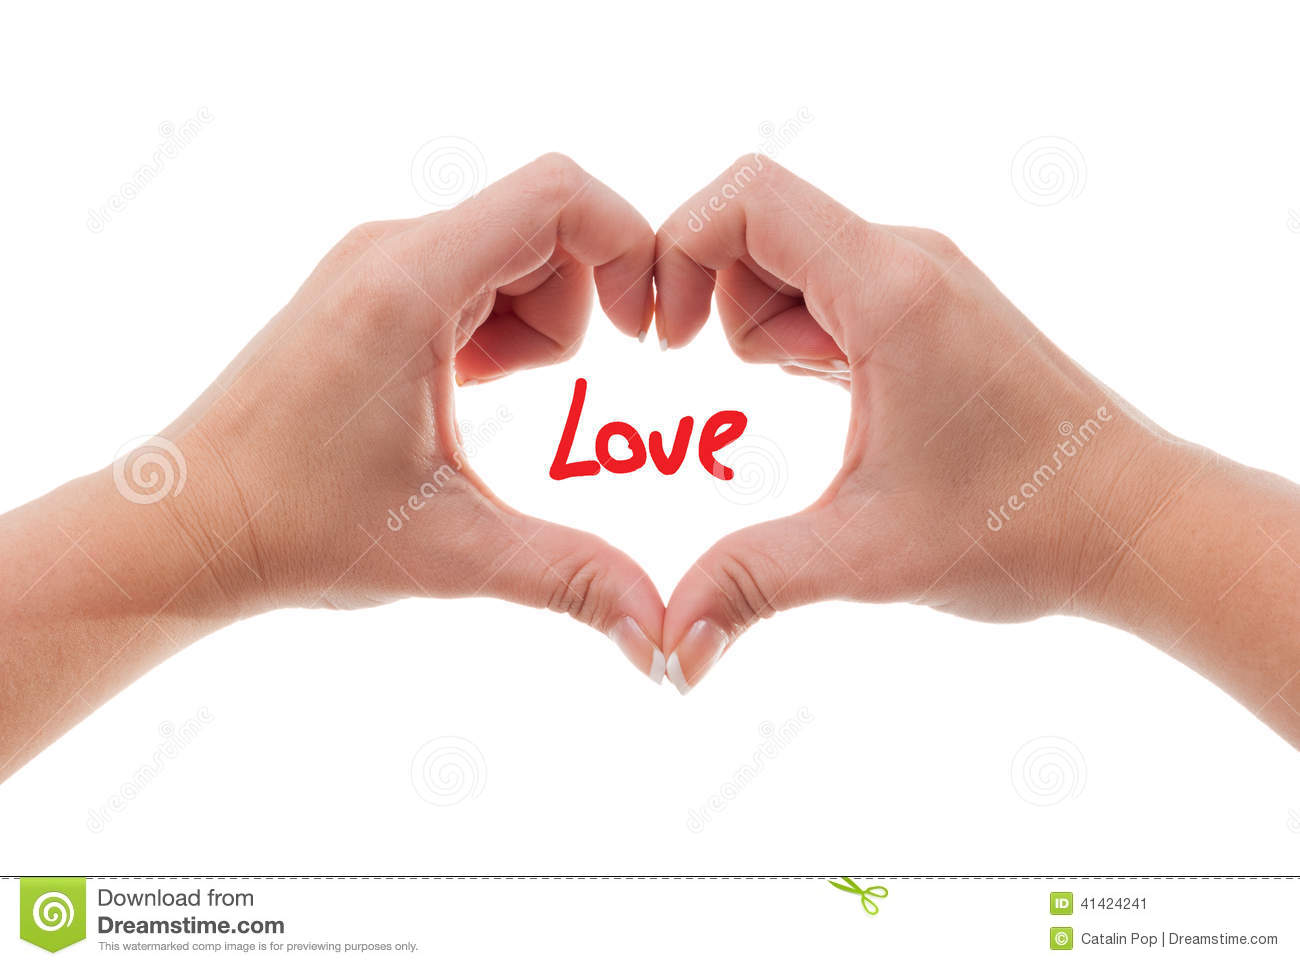 female hand showing the love sign stock image - image of idea, hands